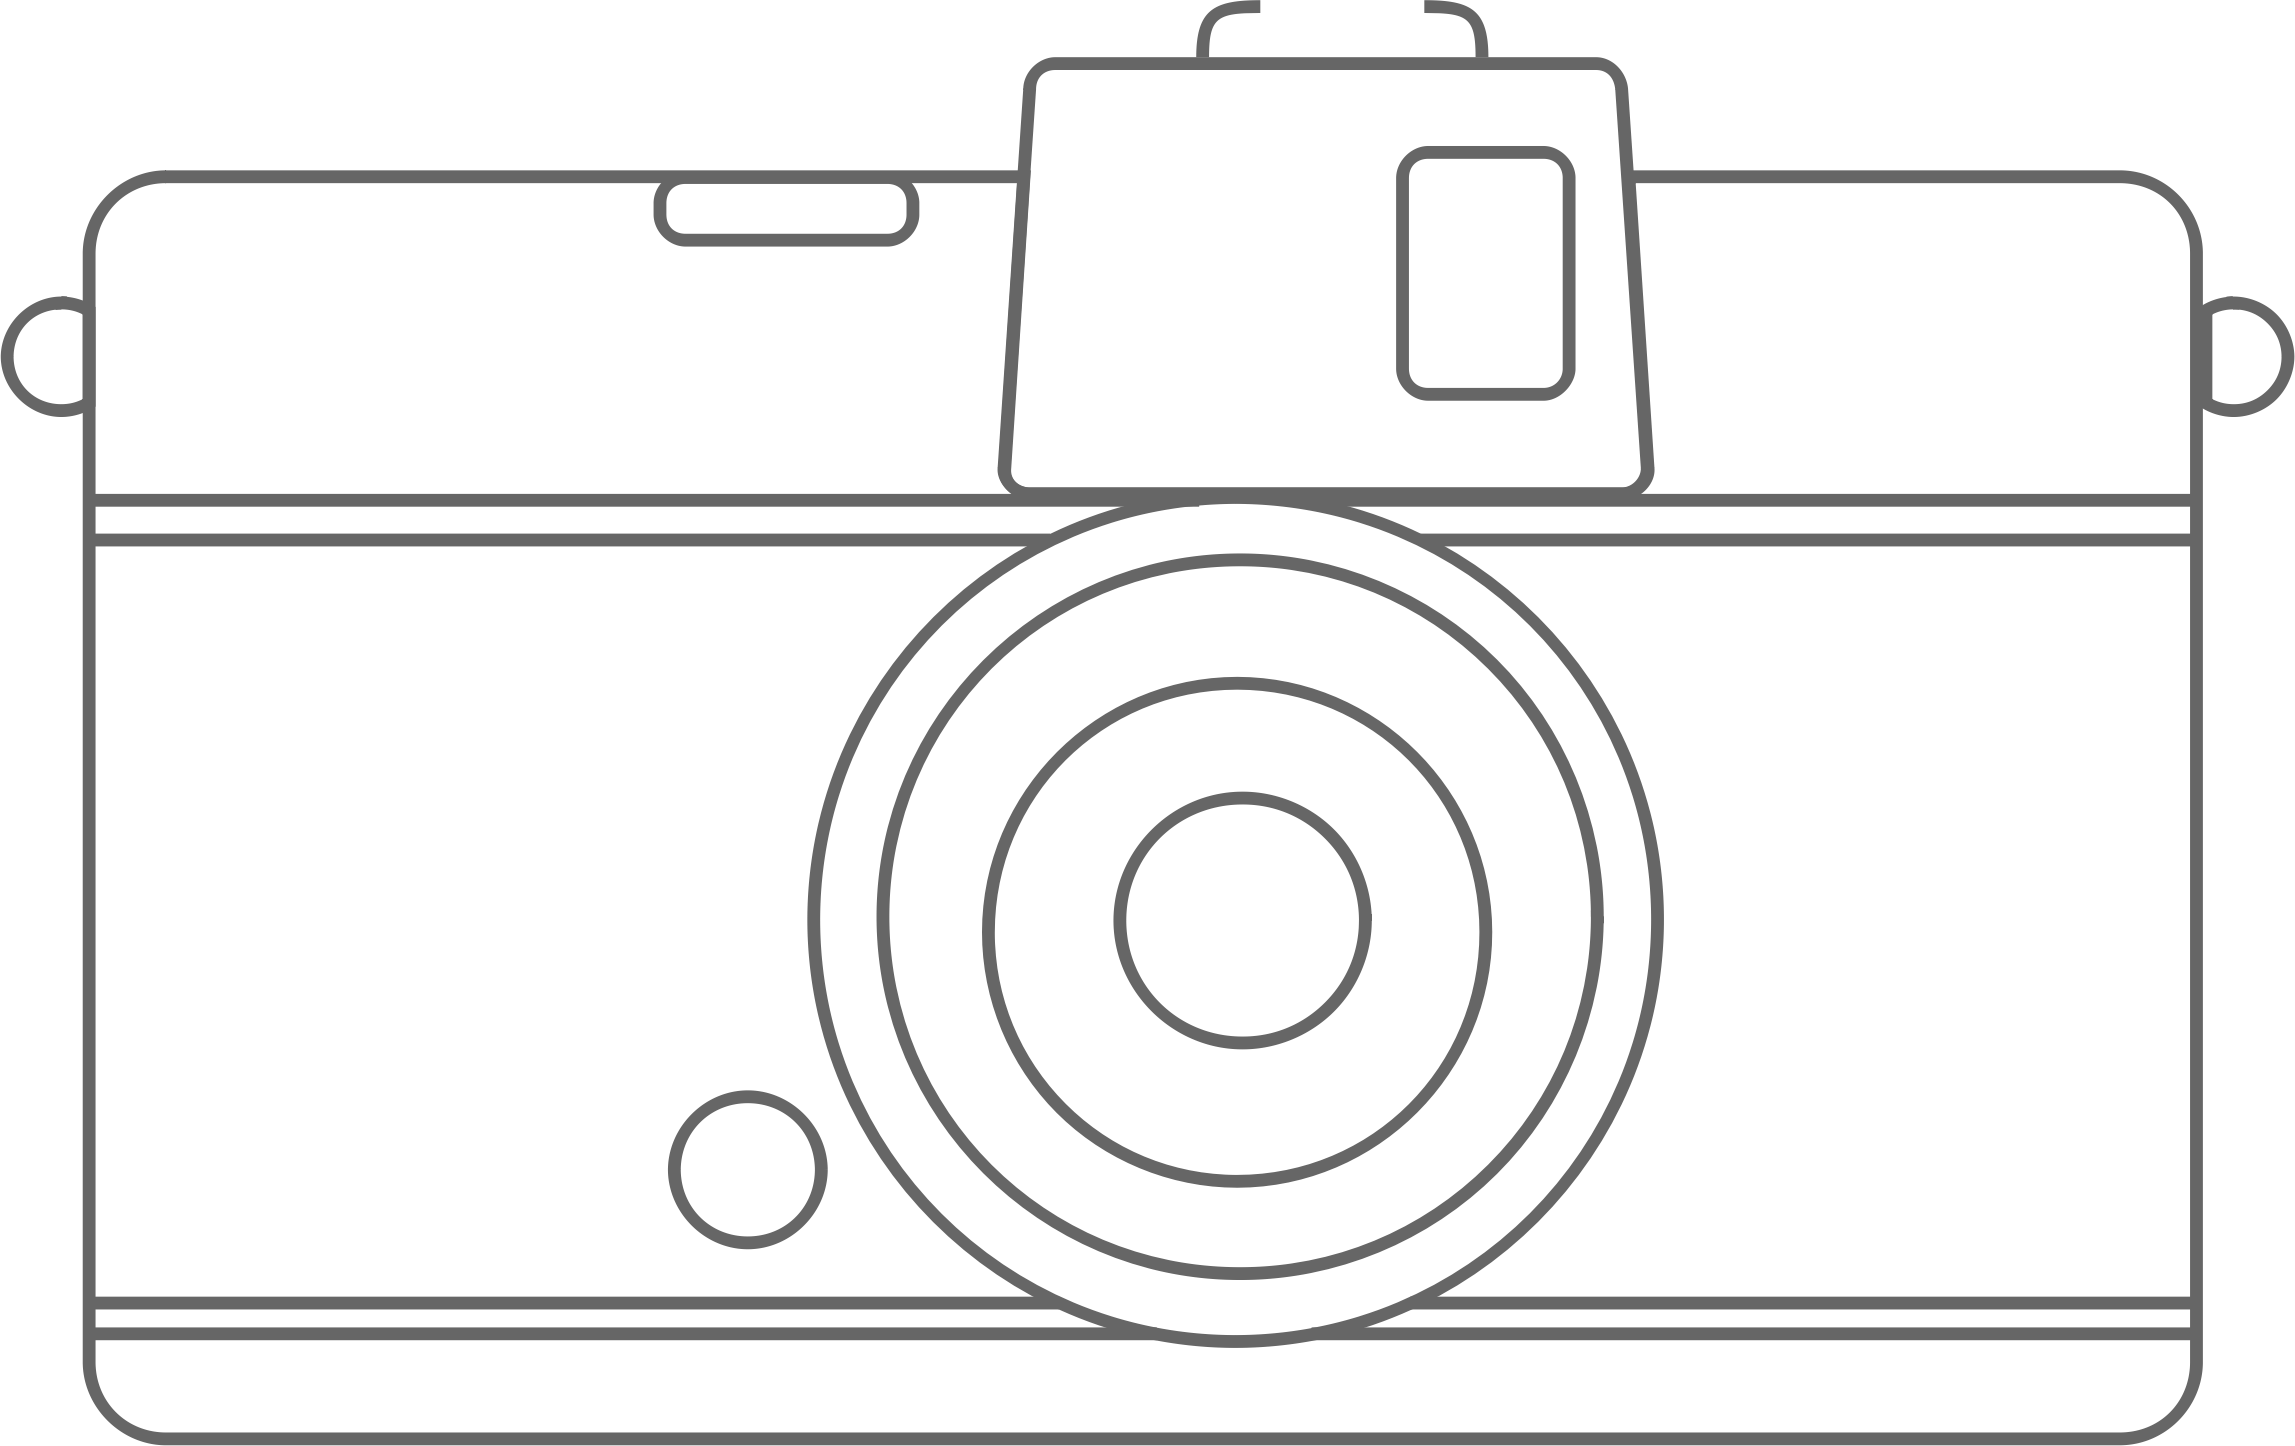 Compact Camera Line Art by Ulrike